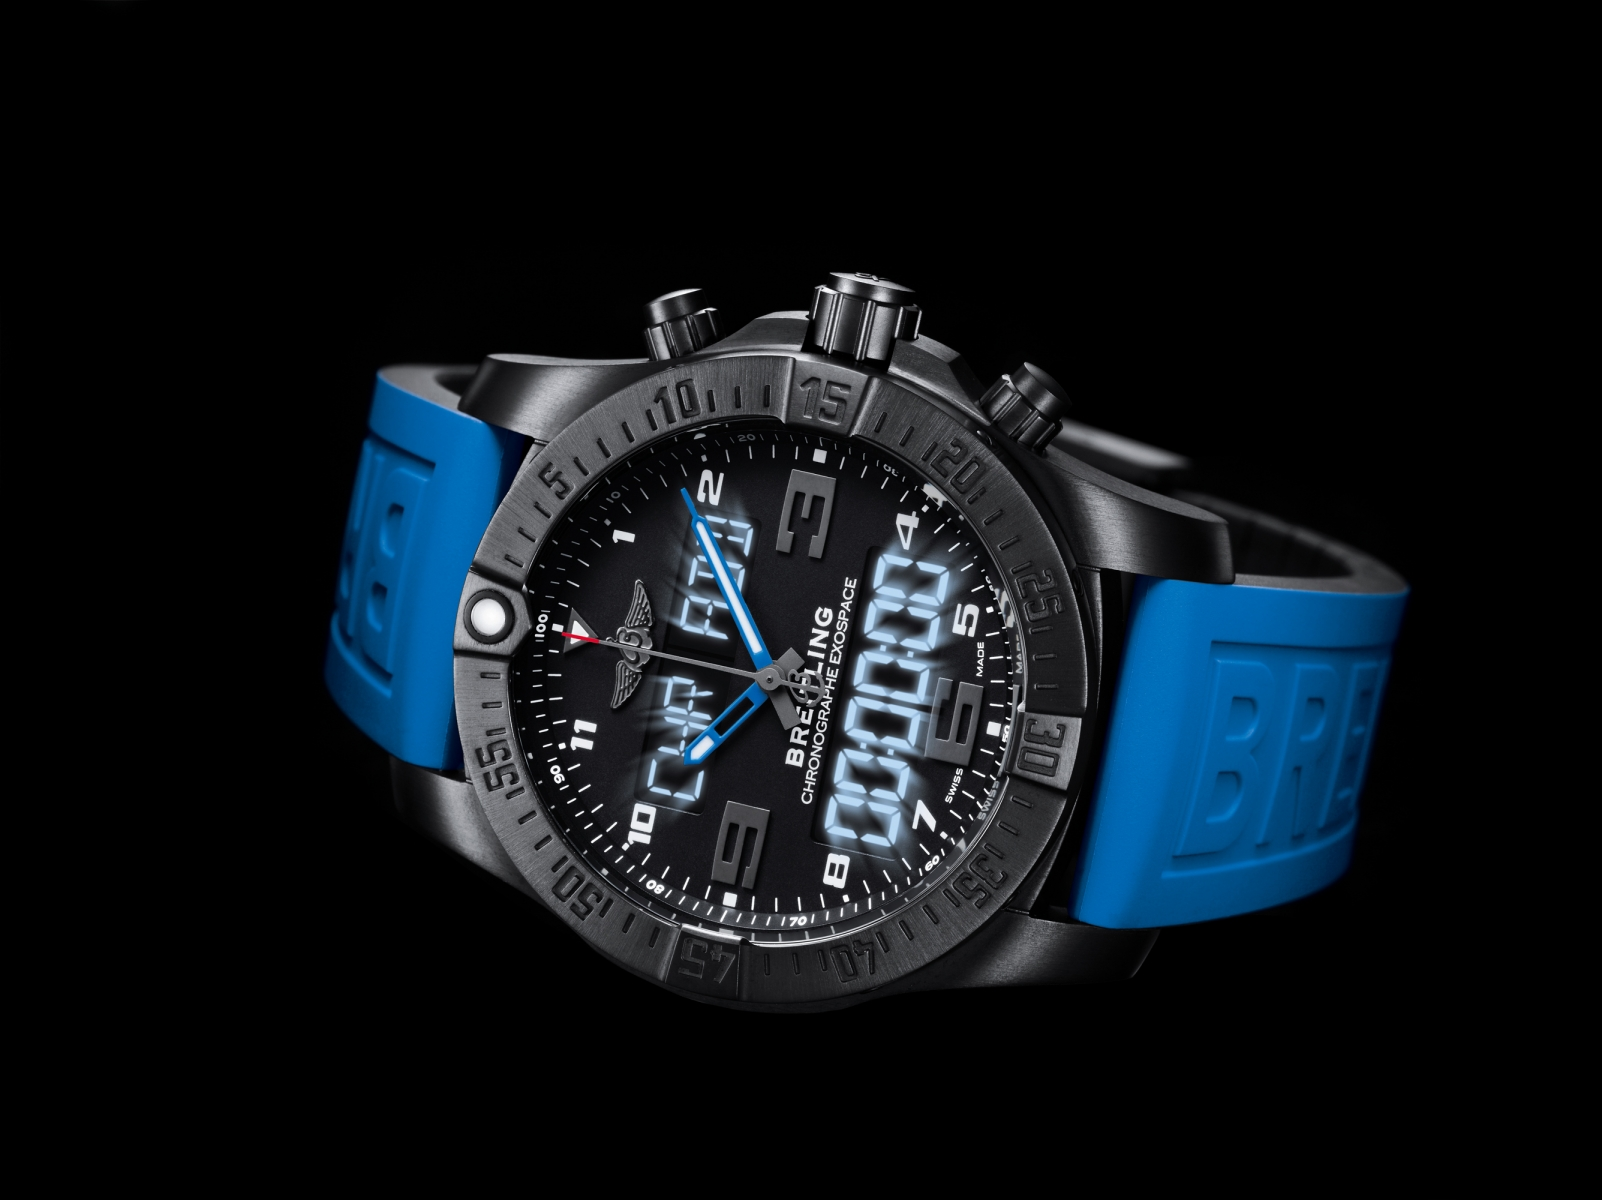 Best Iphone Wallpaper Website Breitling Exospace B55 The Connected Swiss Watch For Pilots